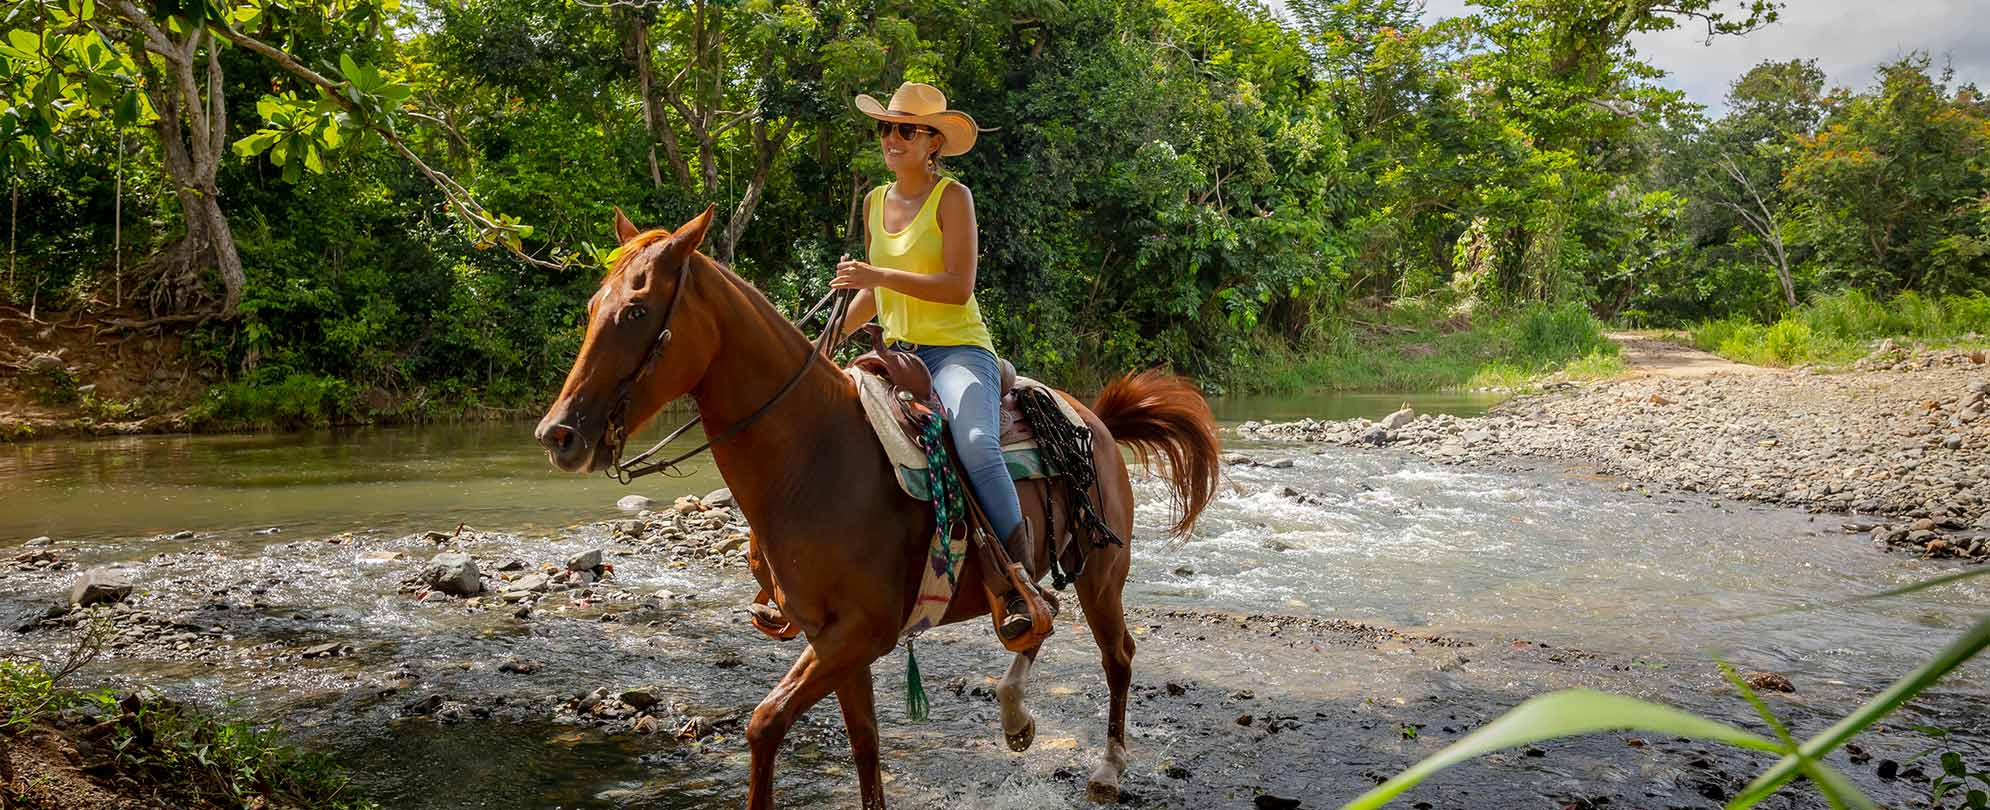 A woman wearing a yellow tank top and a wide-brimmed hat riding a horse through a rocky river.